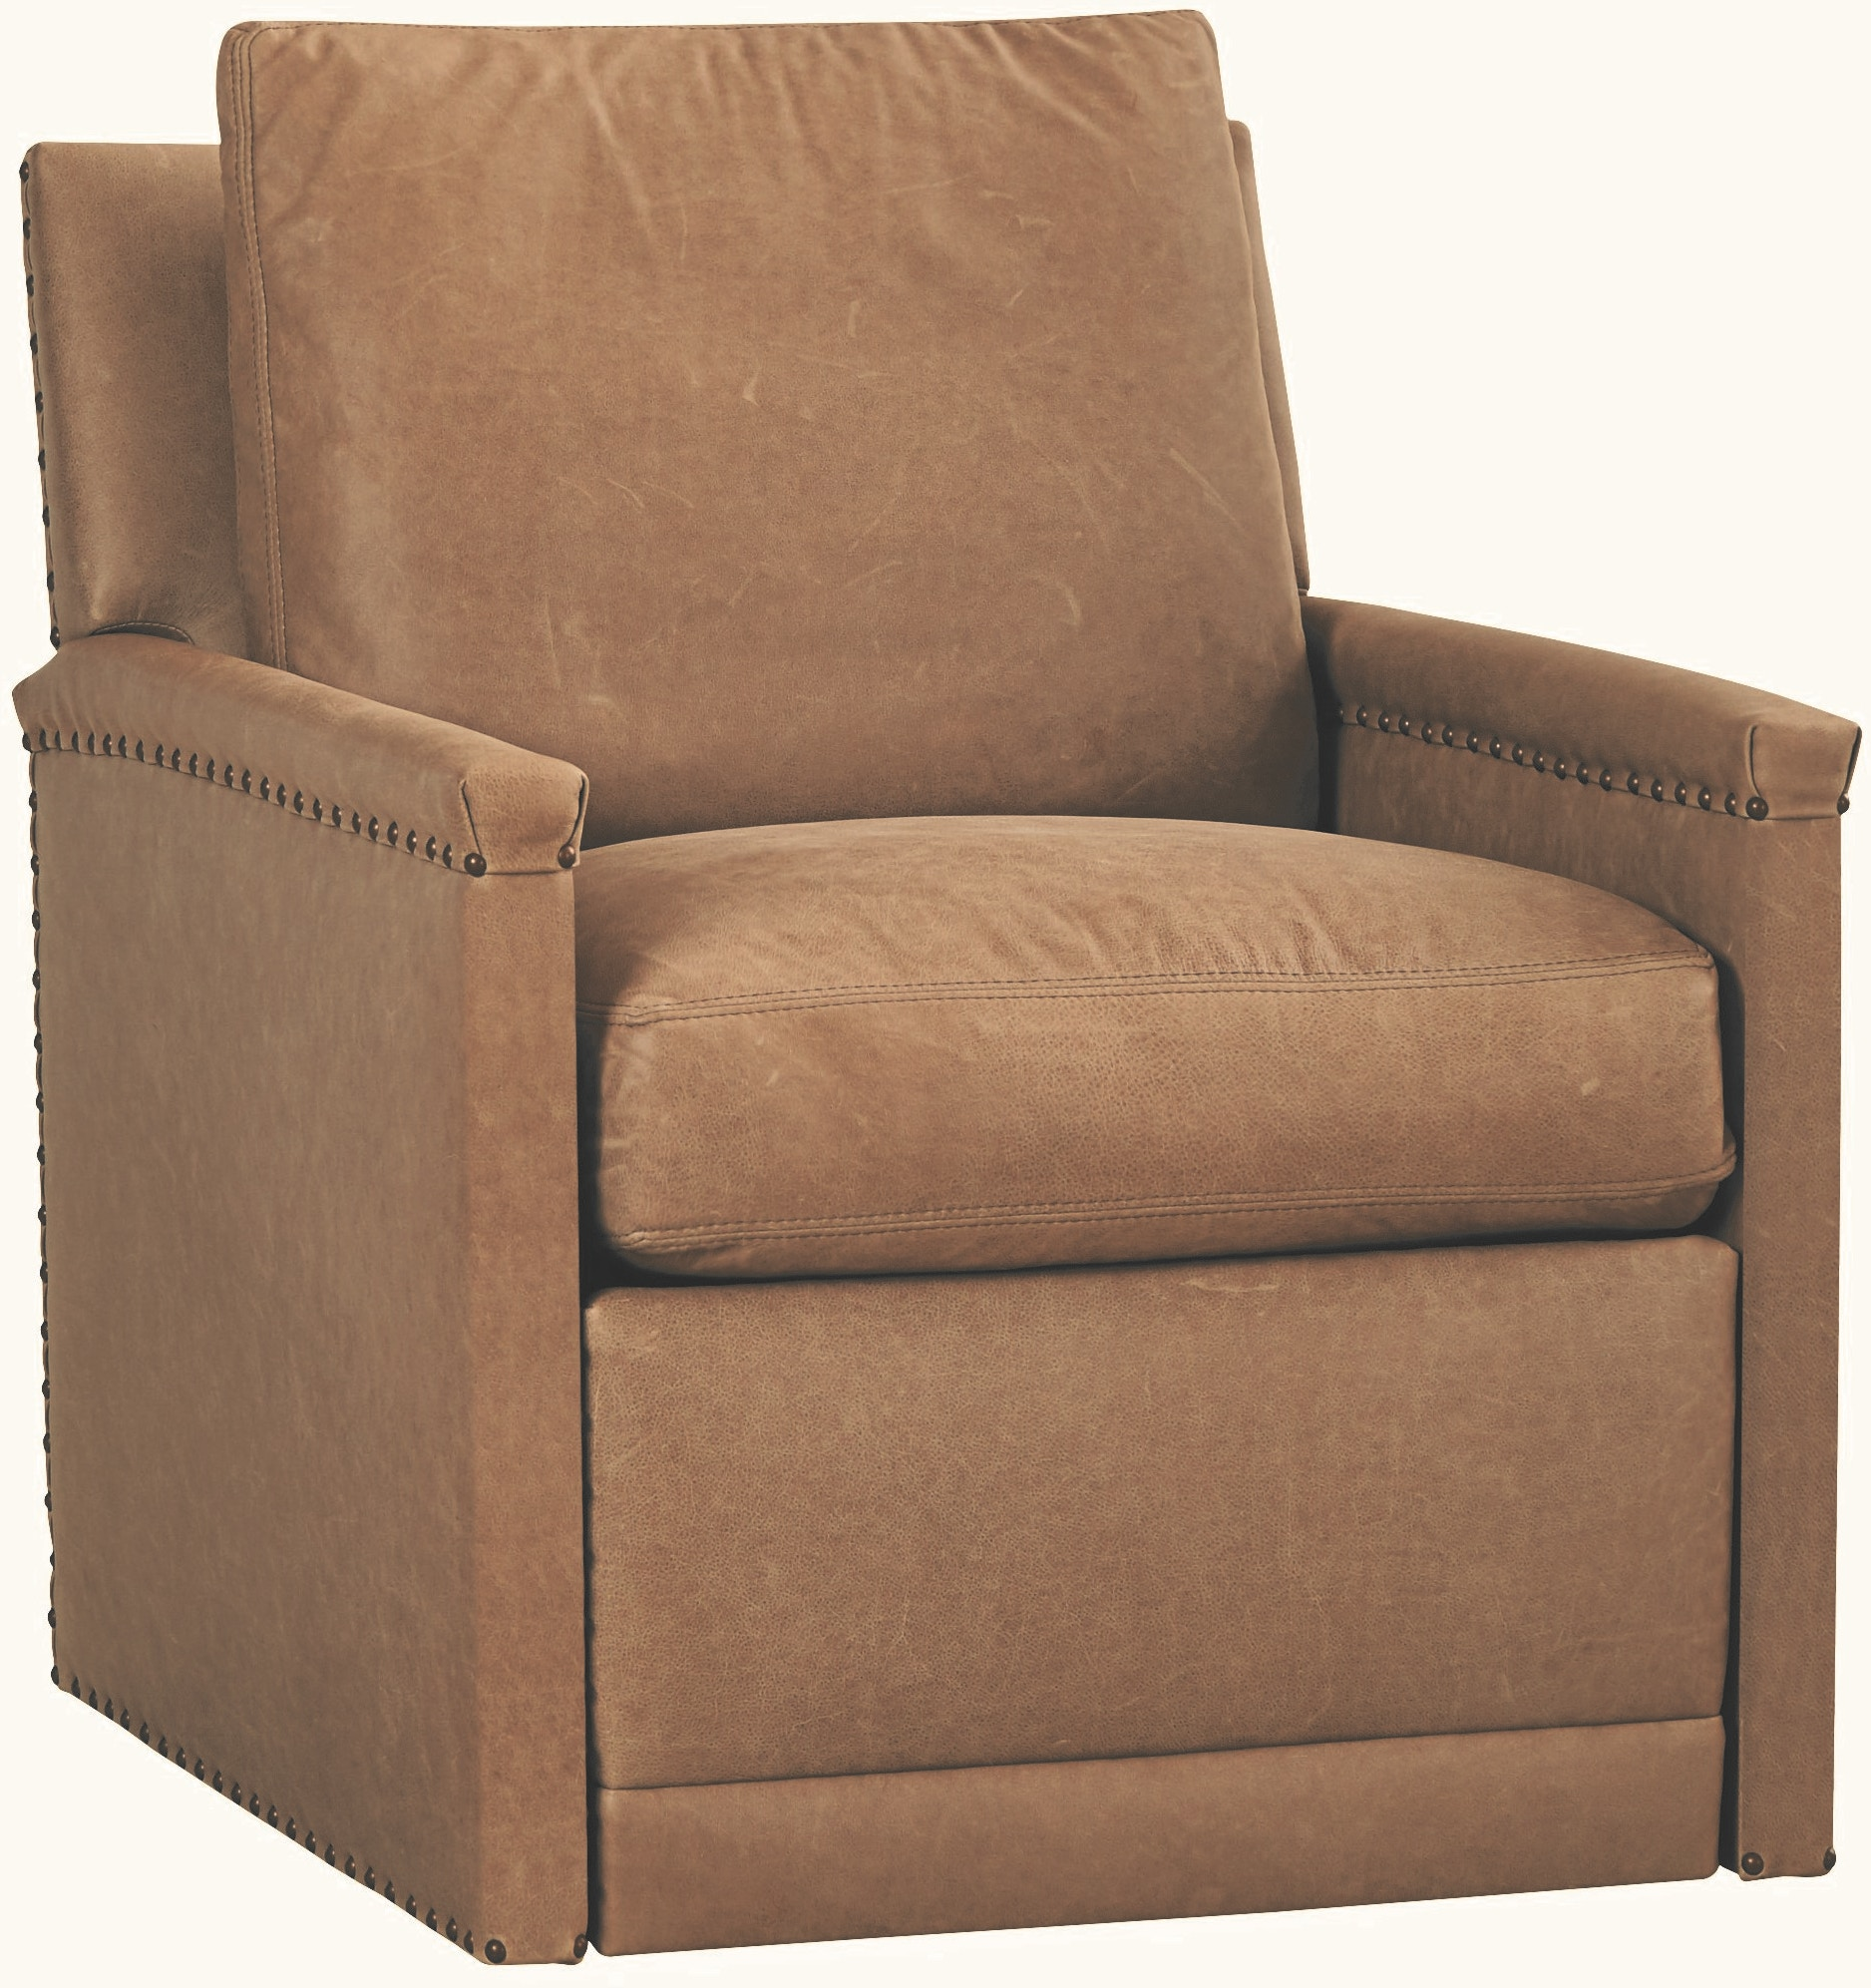 Lee Industries Living Room Relaxor Chair Swivel 1935 01rs